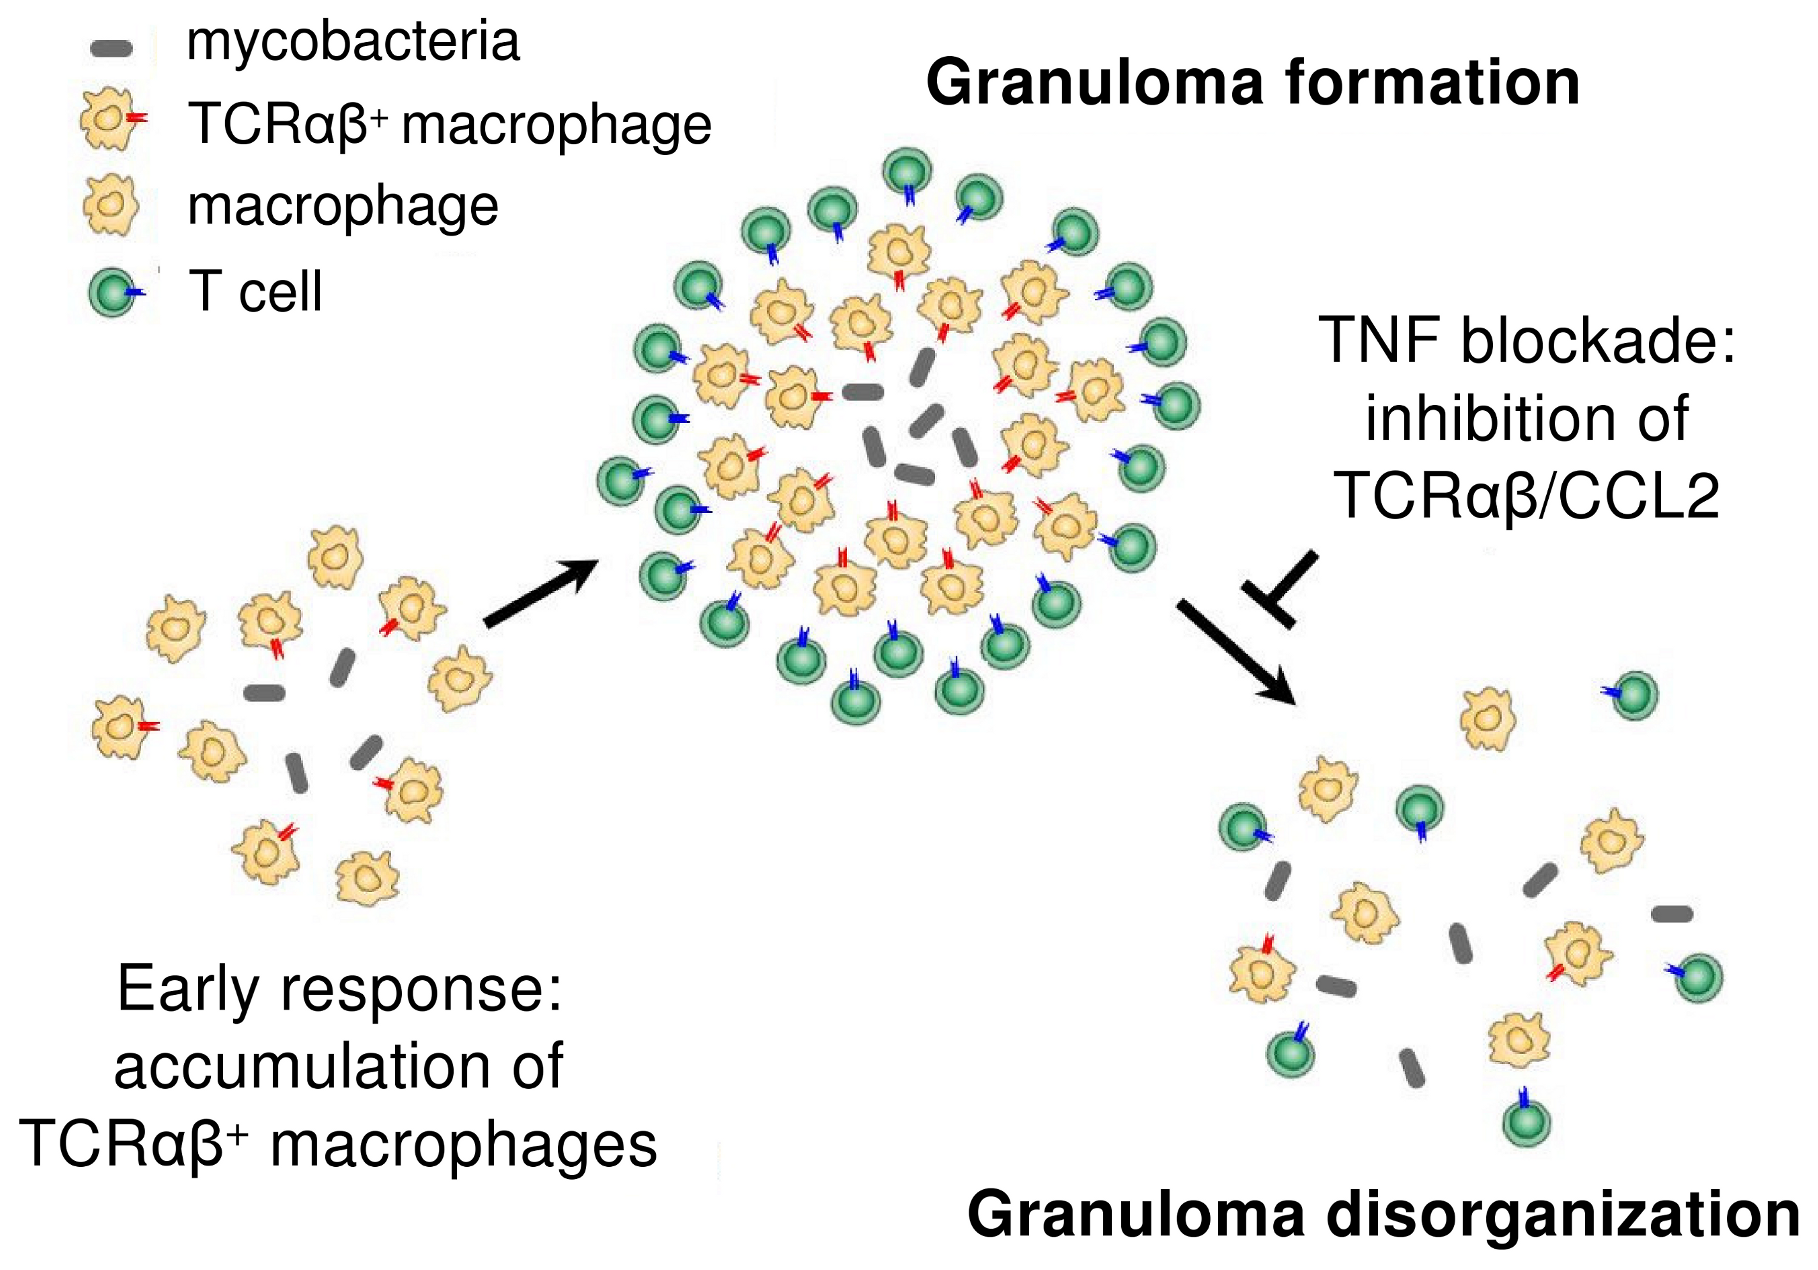 Proposed role of the macrophage recombinatorial TCRαβ in the formation of the tuberculous granuloma and its regulatory interactions with TNF and CCL2.